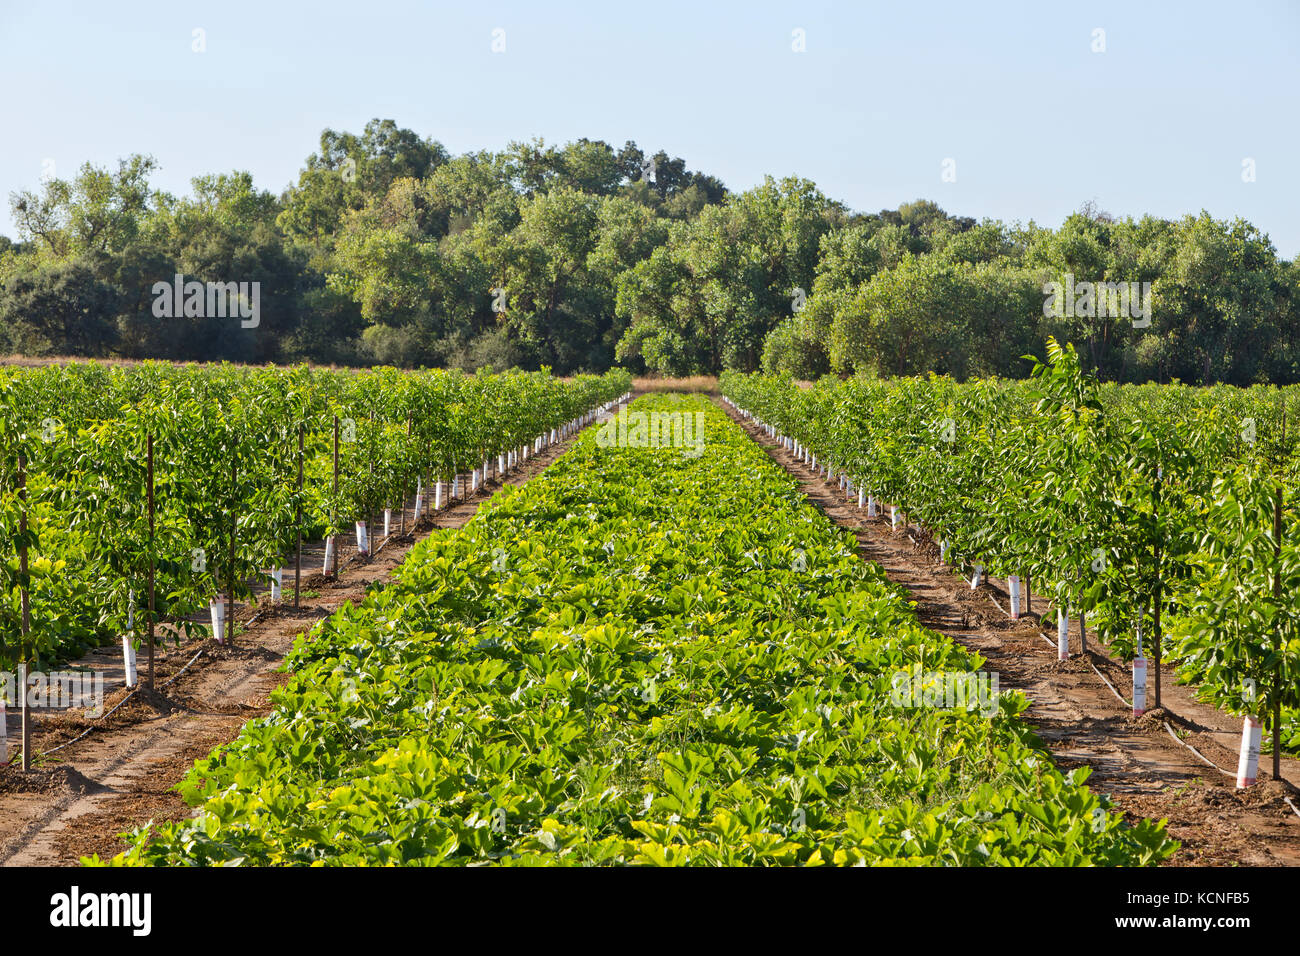 Foliage Chandler Agriculture Farm Farming Produce Growing Stock